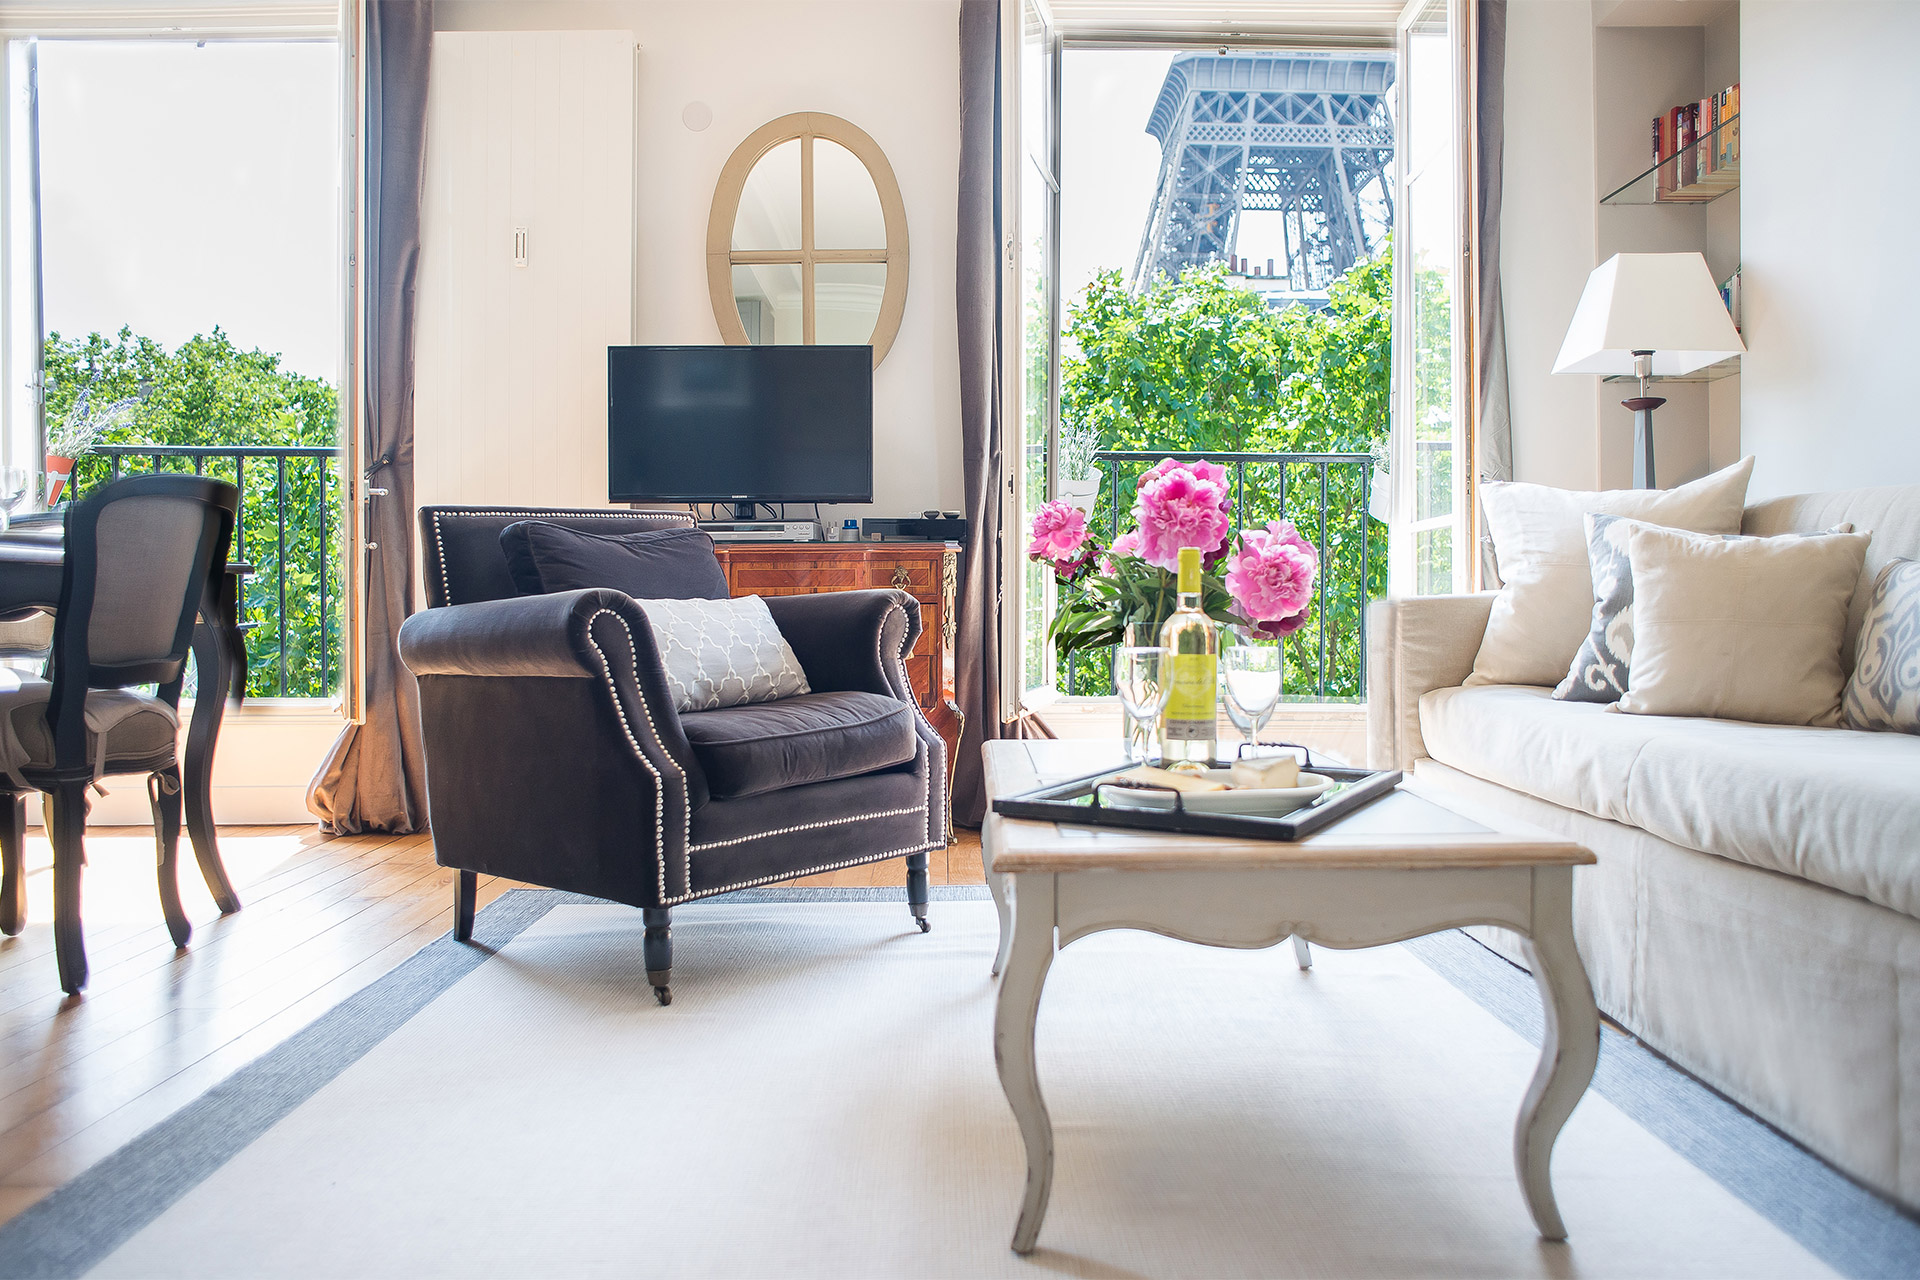 View of the Eiffel Tower from the living room armchair in the Bergerac vacation rental